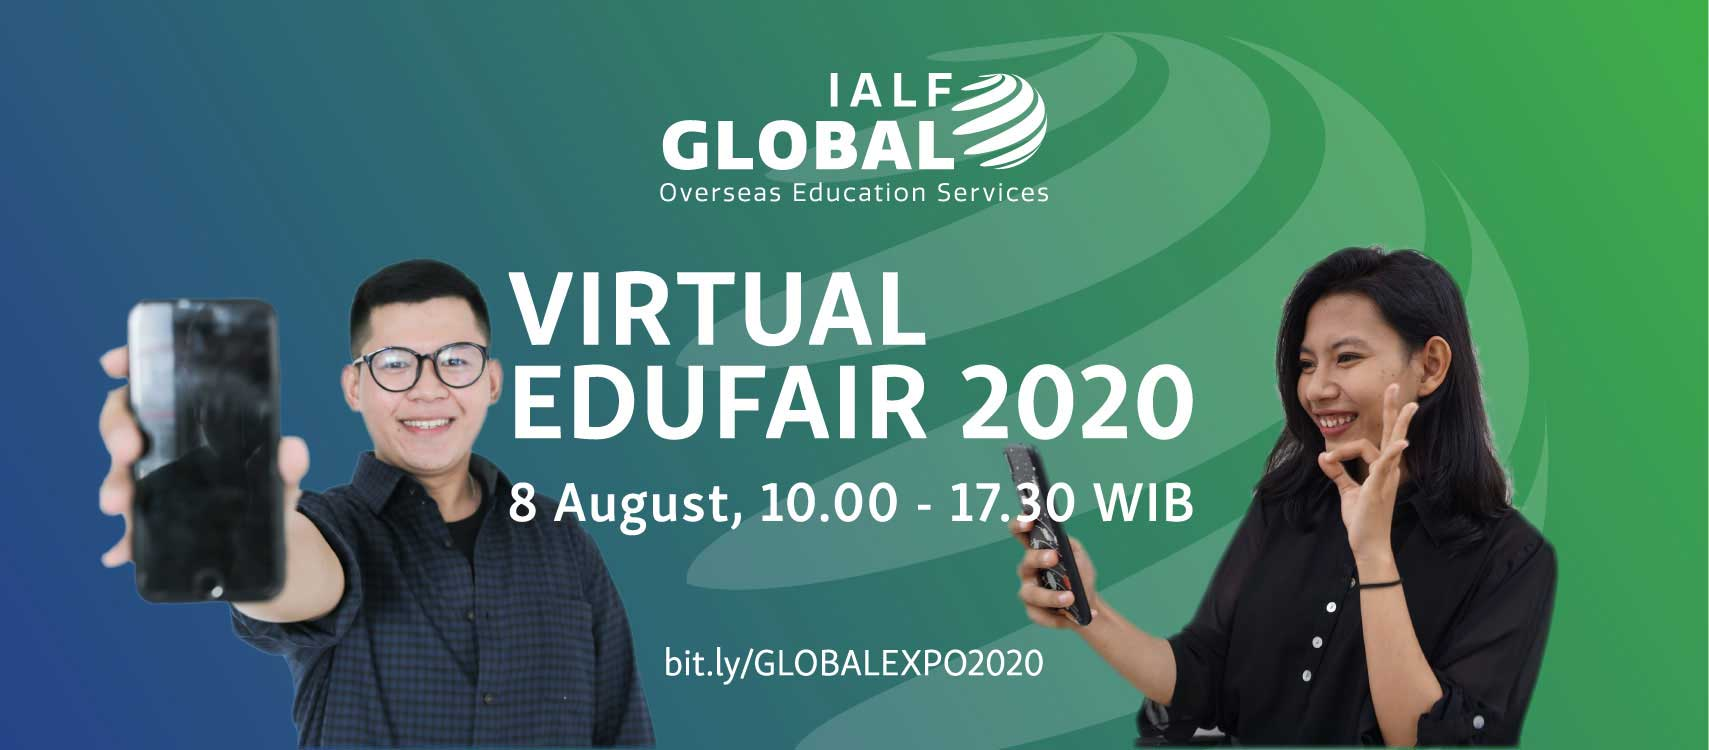 ialf global virtual edufair 2020